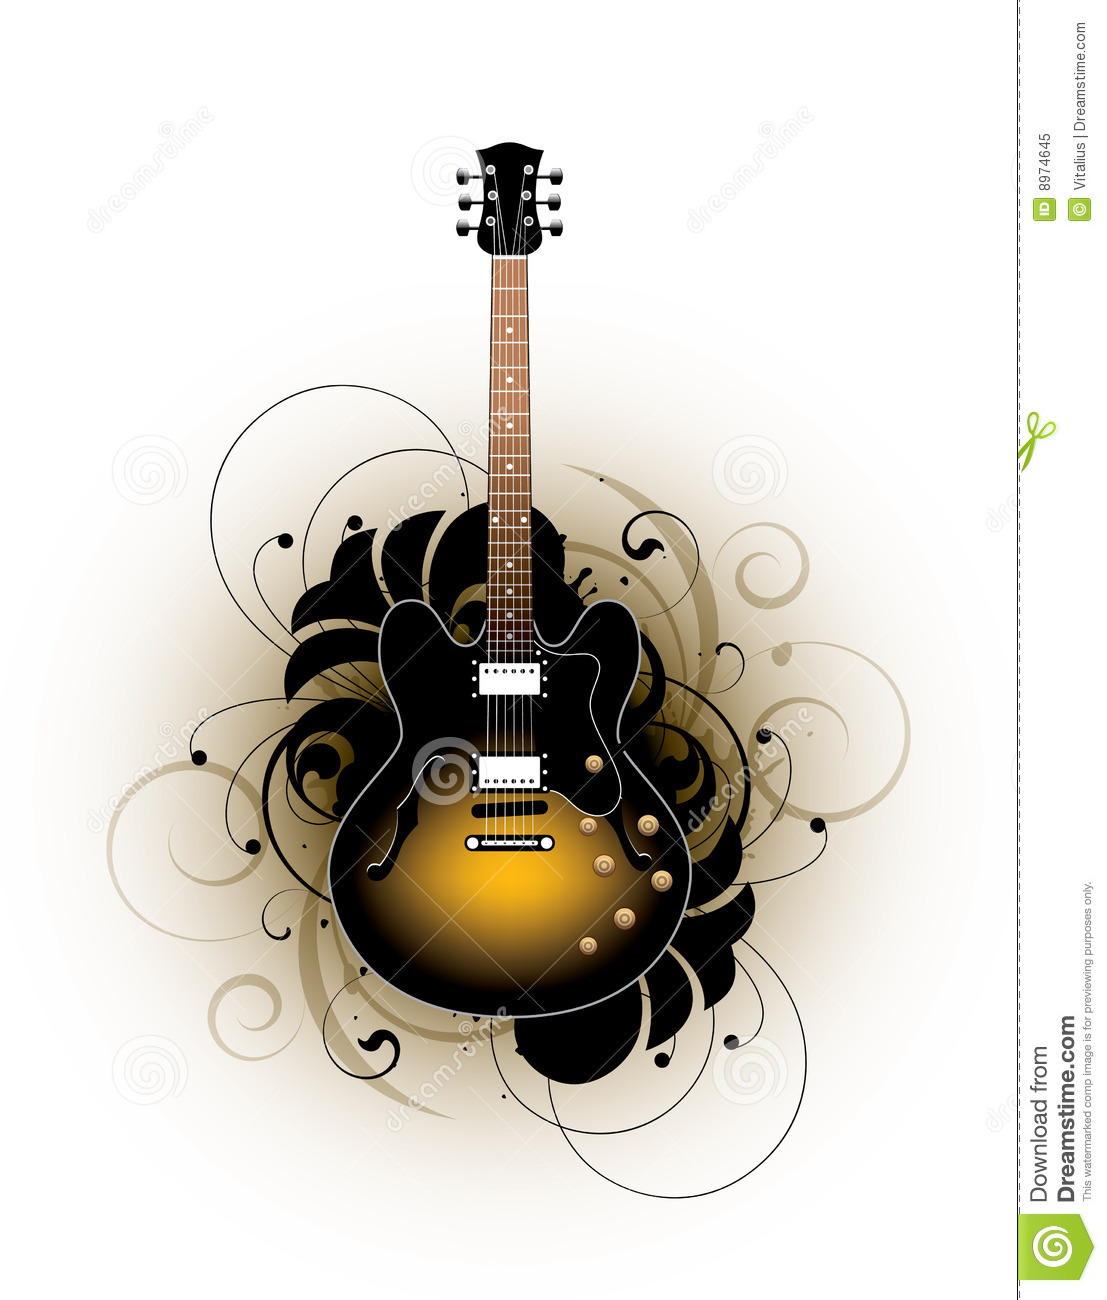 Acoustic Guitar Design Stock Vector Illustration Of Brown